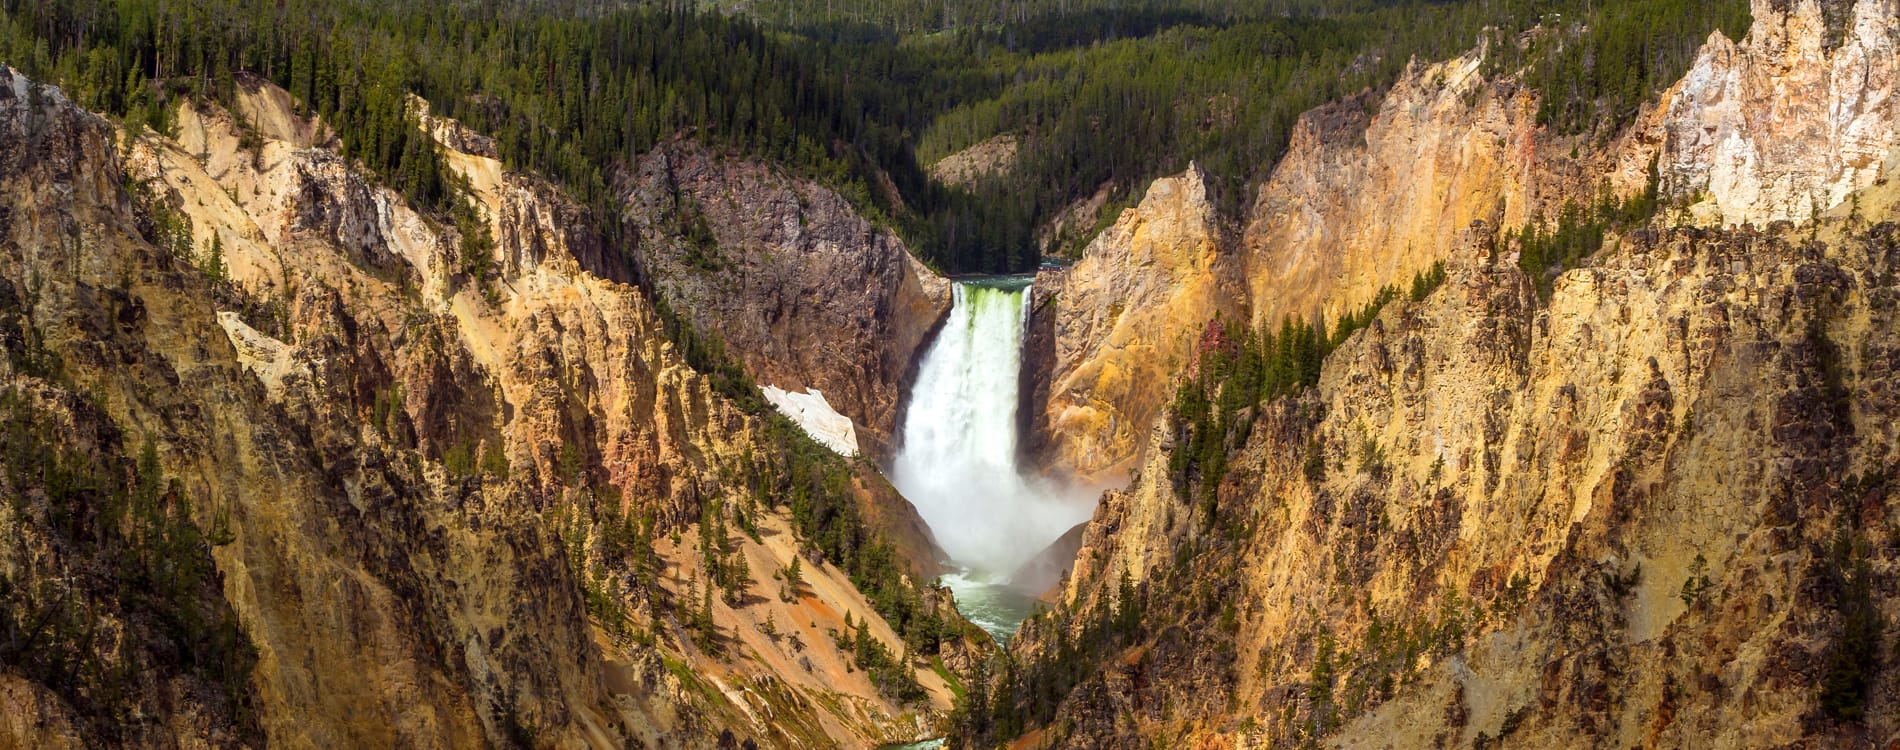 West Yellowstone - Grand Canyon of the Yellowstone River